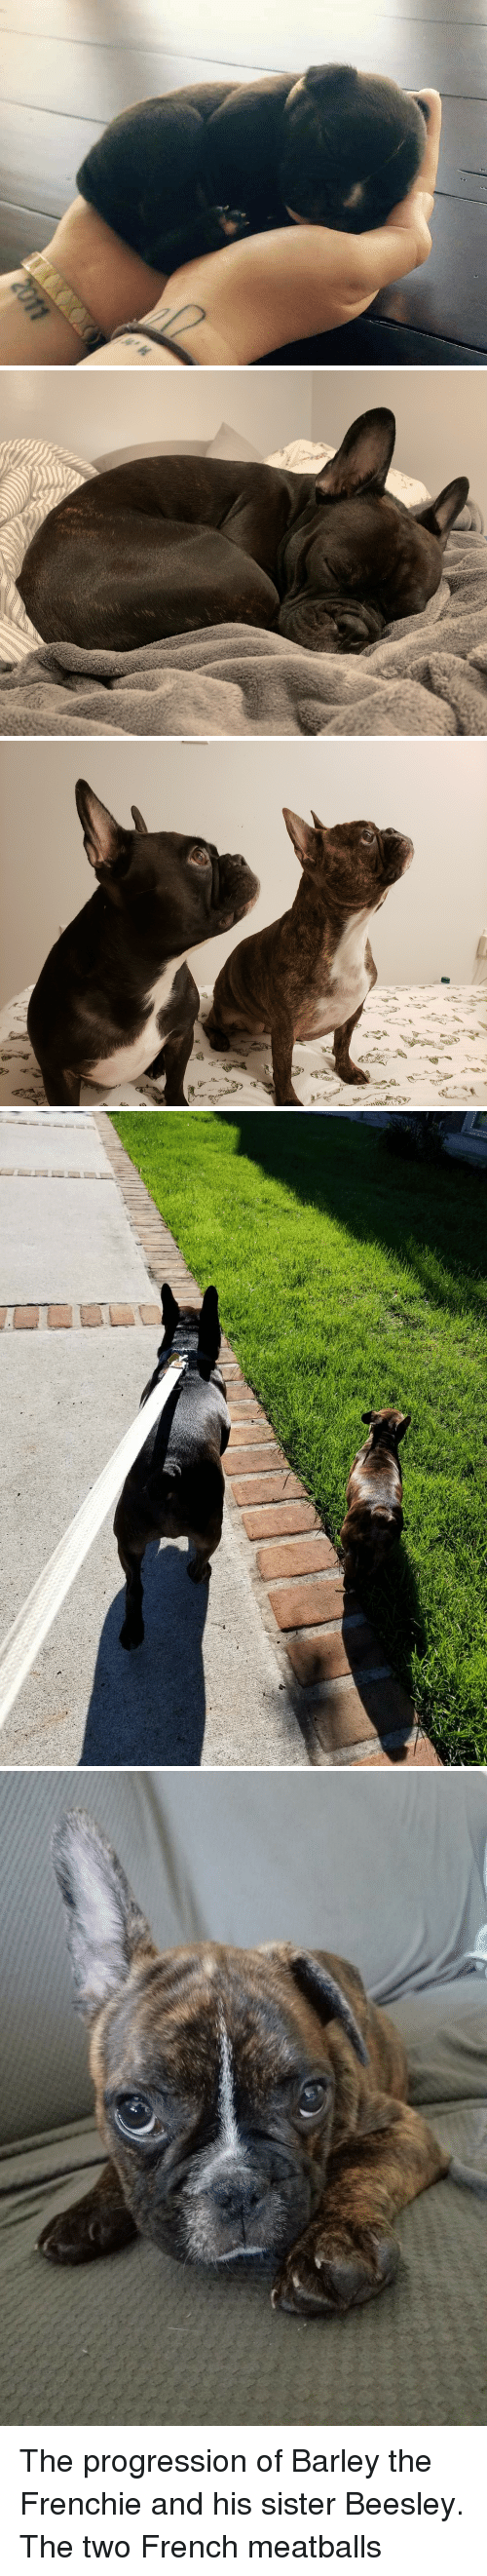 love at first sight: The progression of Barley the Frenchie and his sister Beesley. The two French meatballs